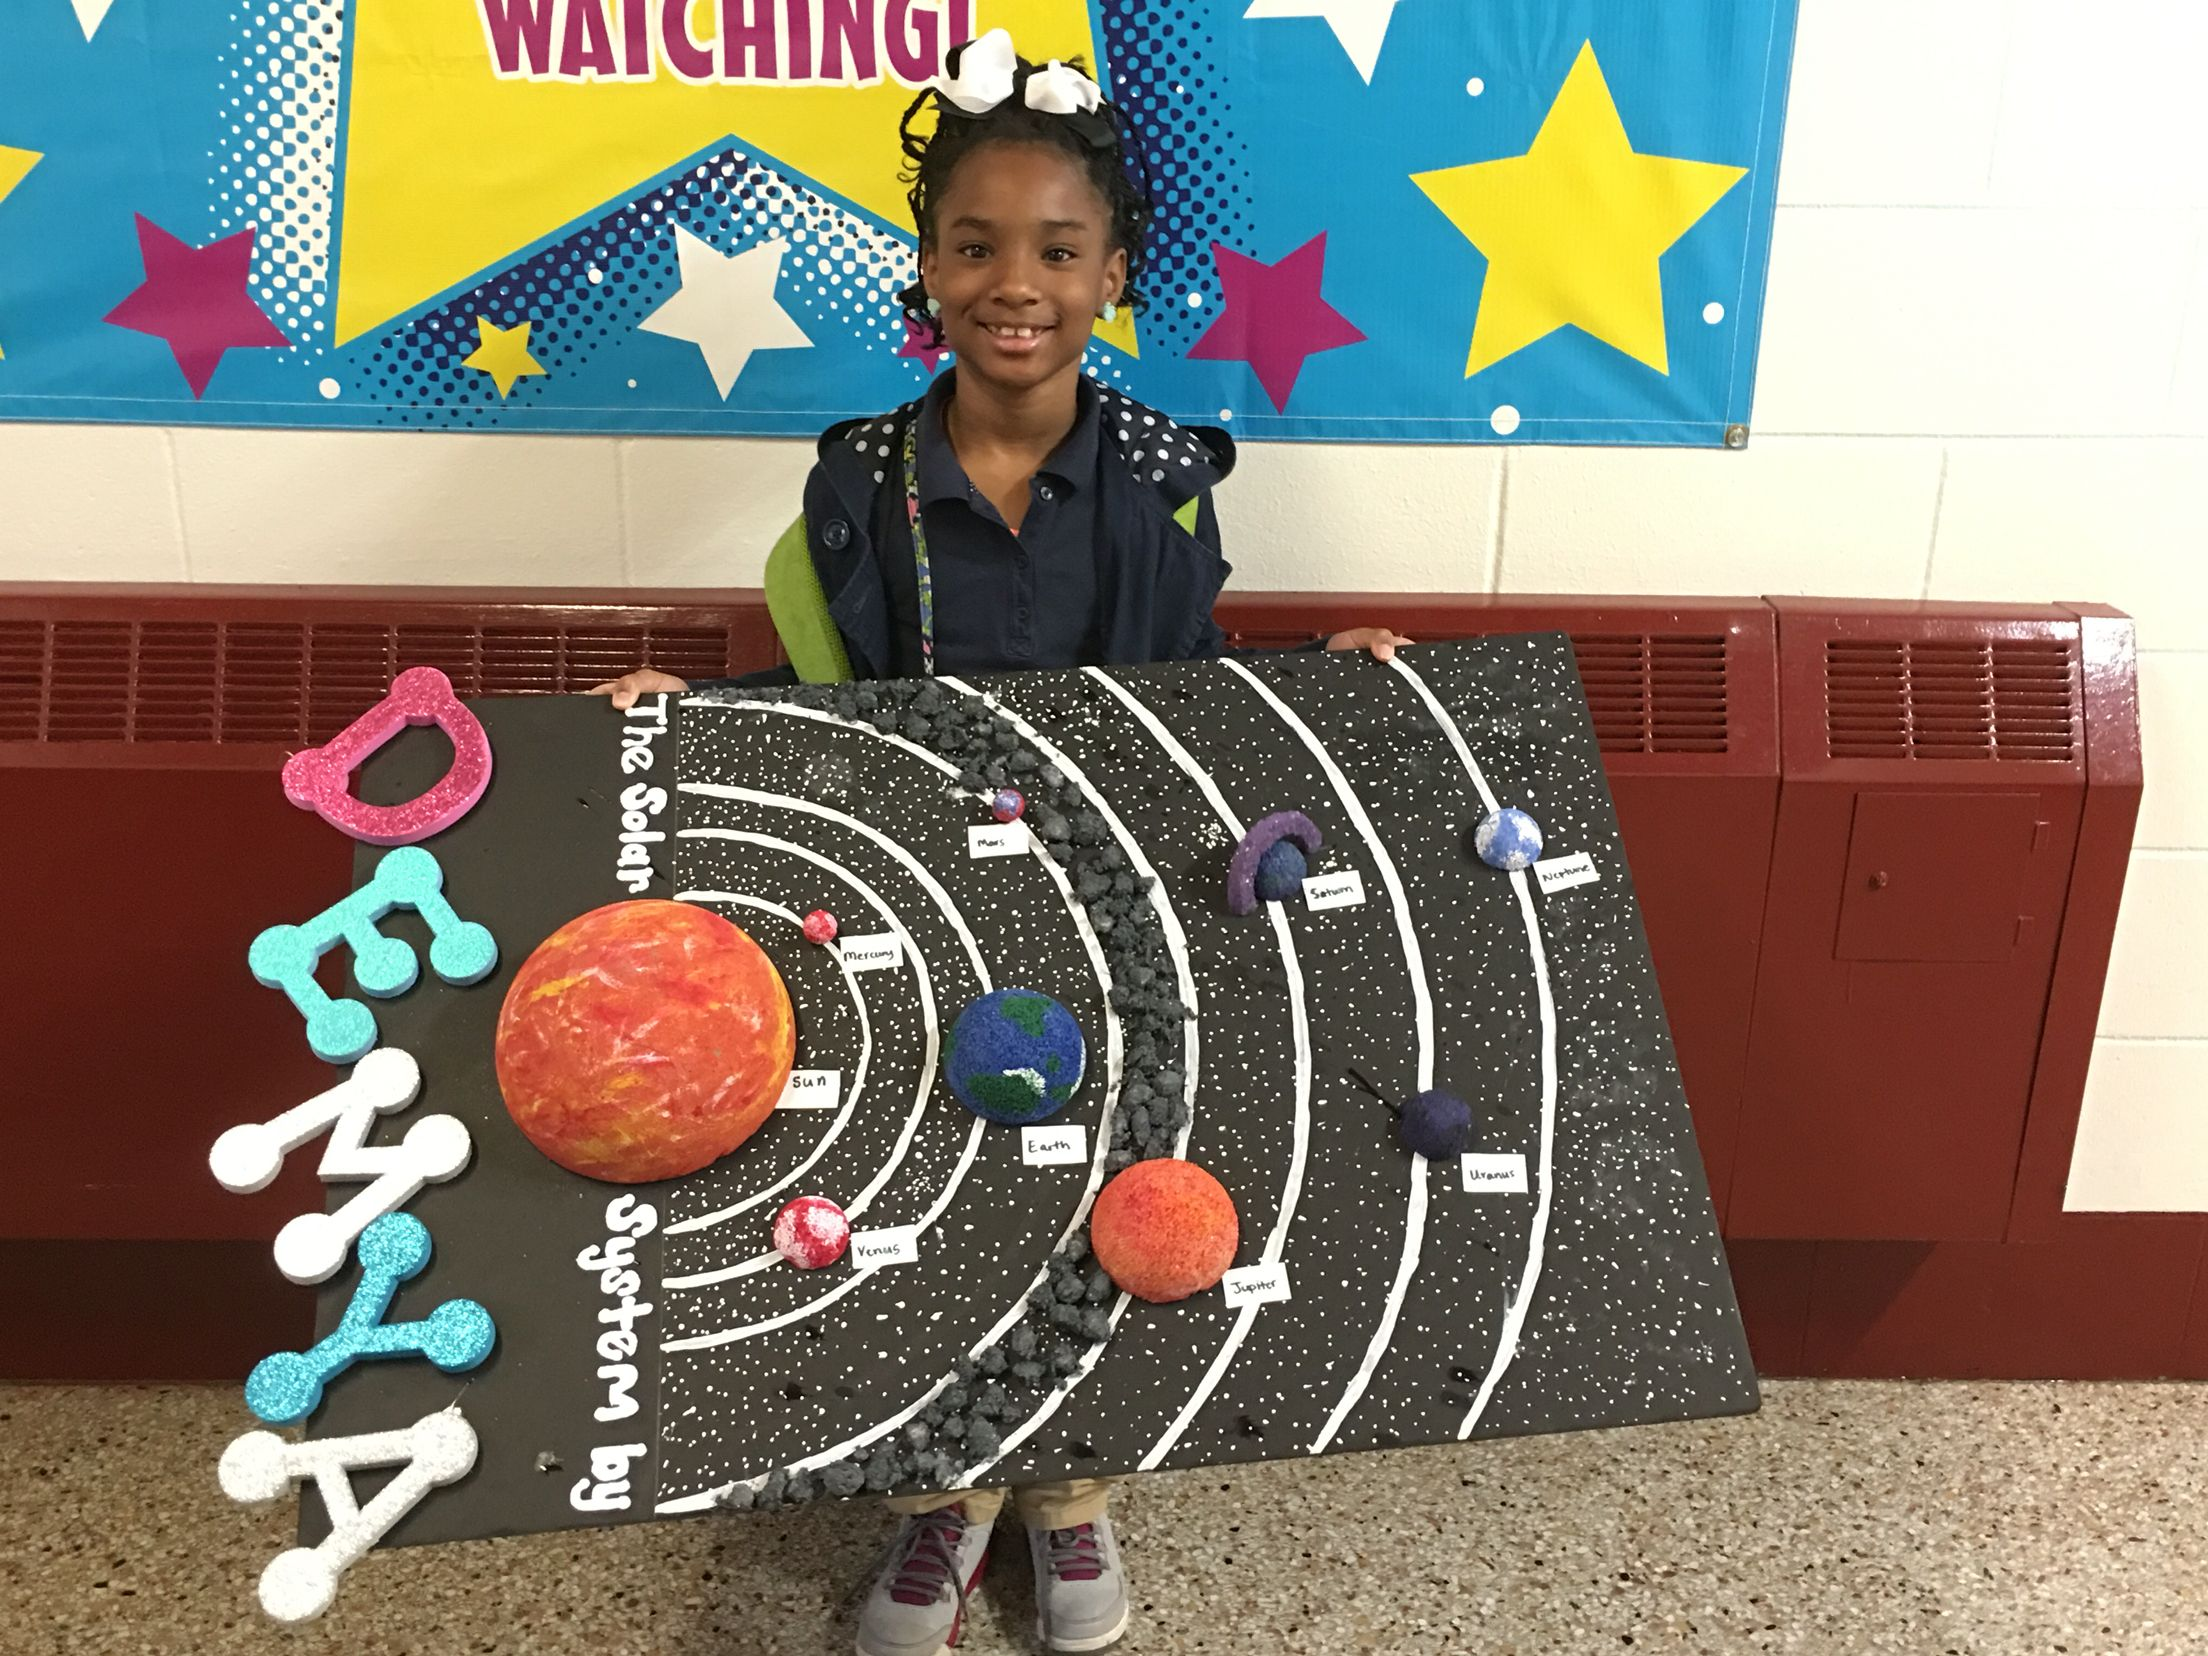 Solar System with asteroid belt #project